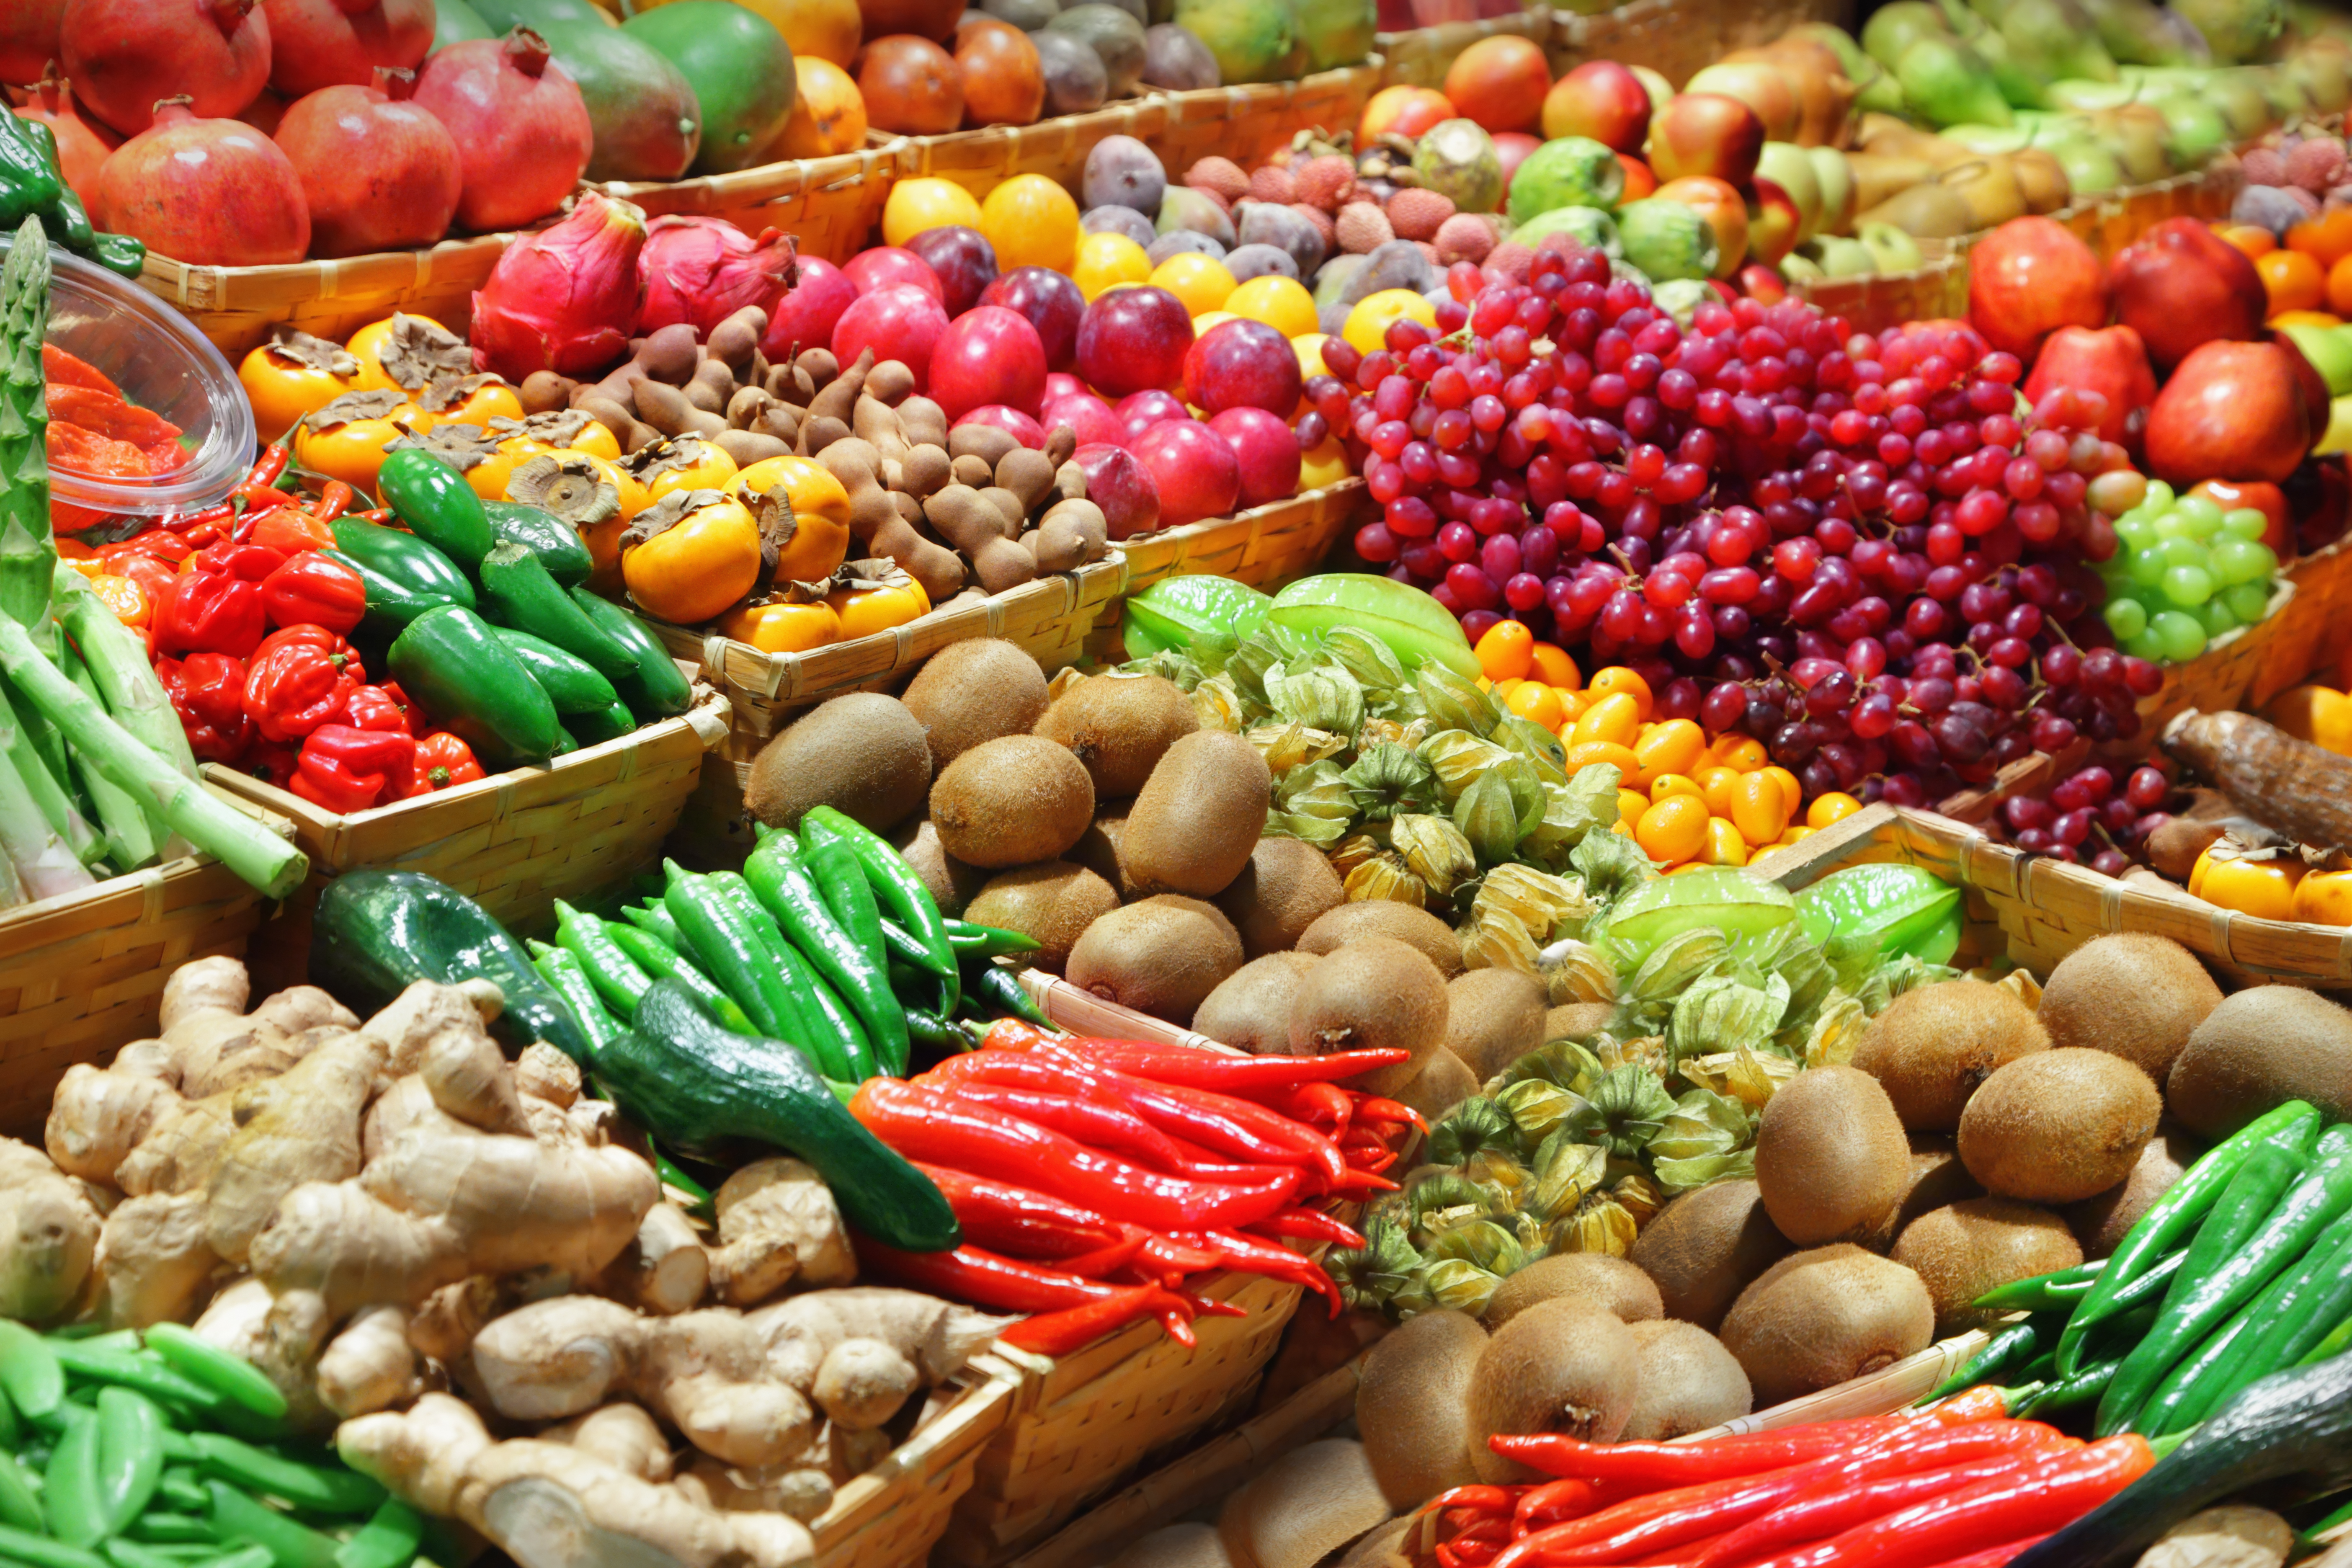 Fresh produce in supermarkets everywhere